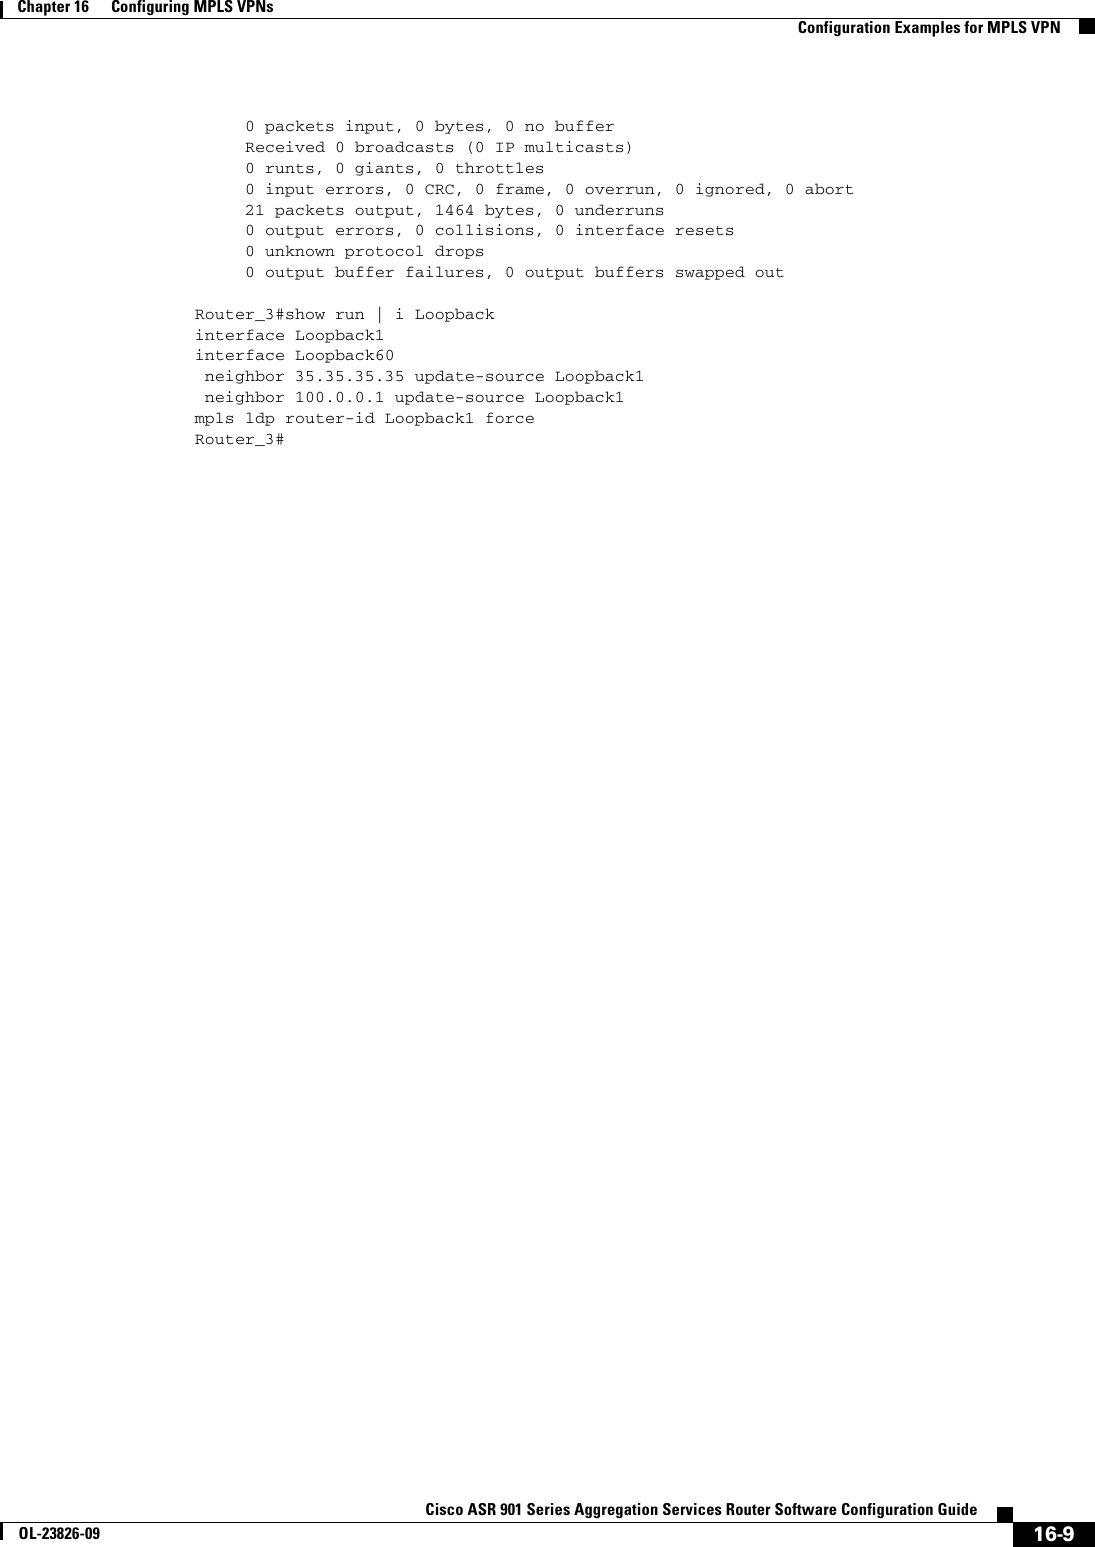 Cisco Gigabit Ethernet Interface Resets